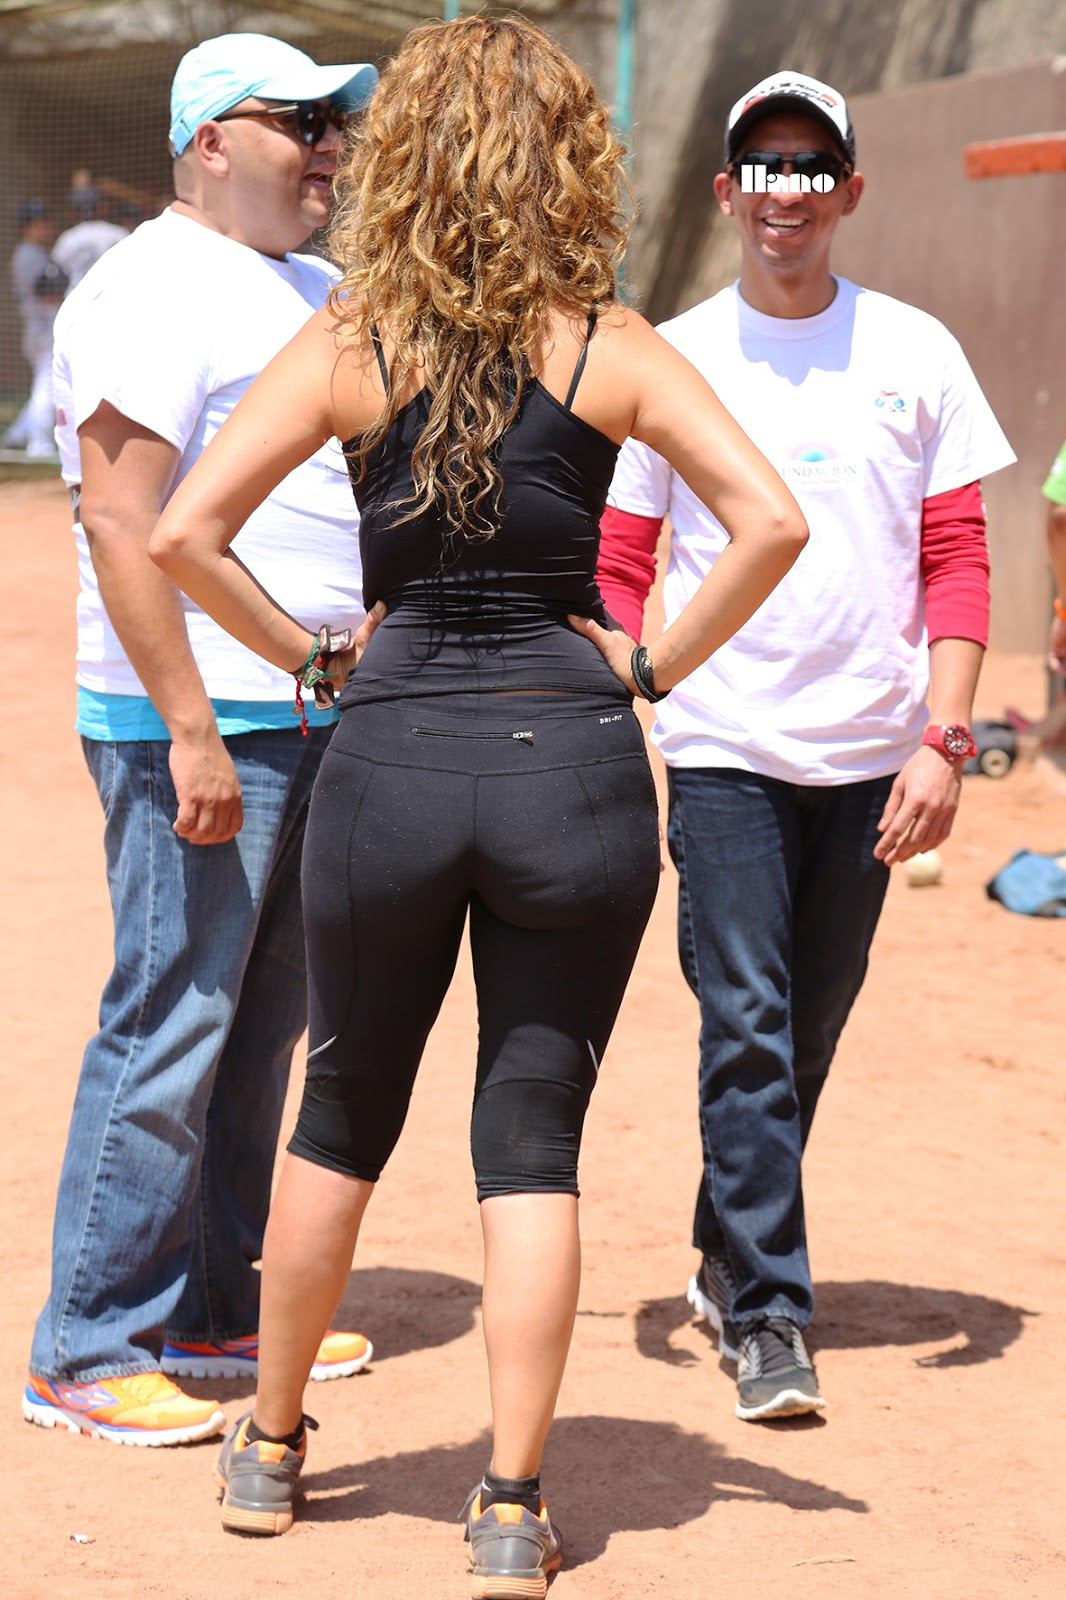 Super Milf Blonde And Huge Ass In Tight Black Spandex-3696